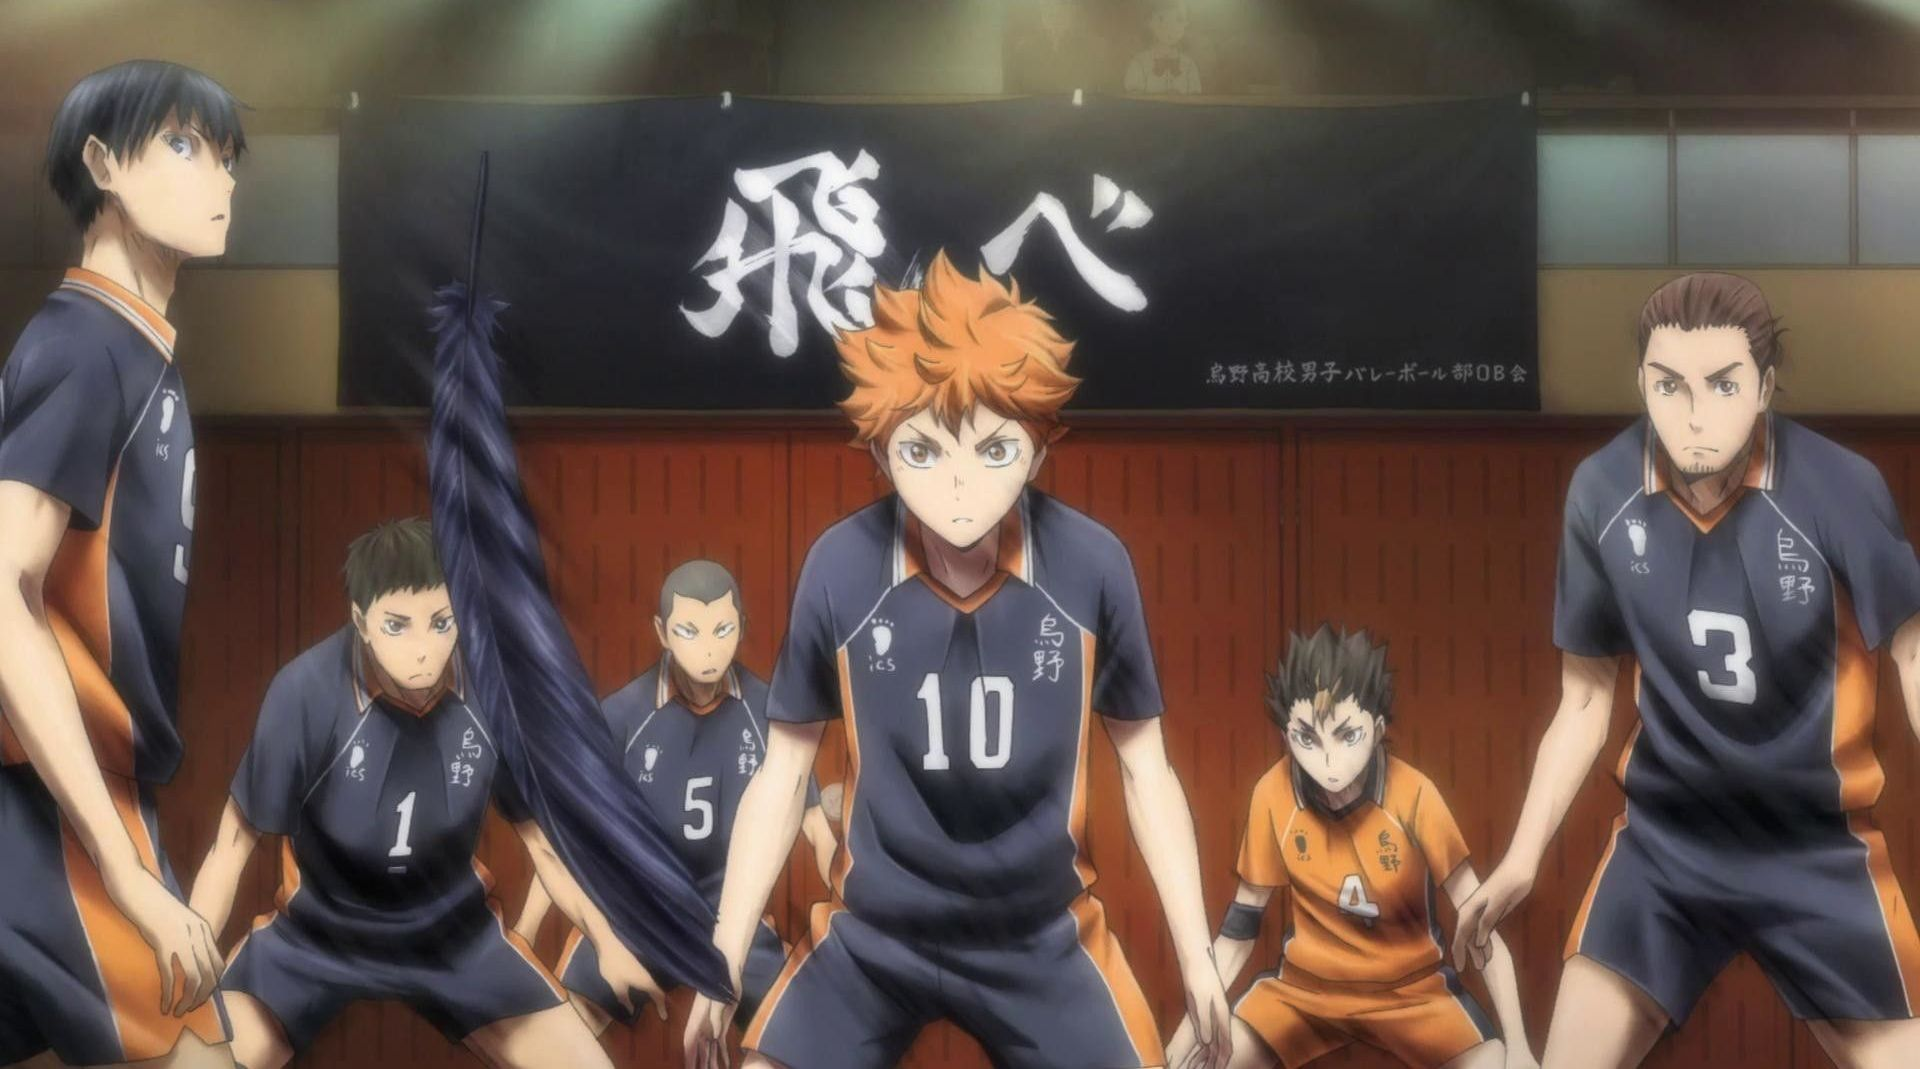 Nouvelle bande annonce de Haikyu!! Land vs. Sky – Haikyu!! The Volleyball Way